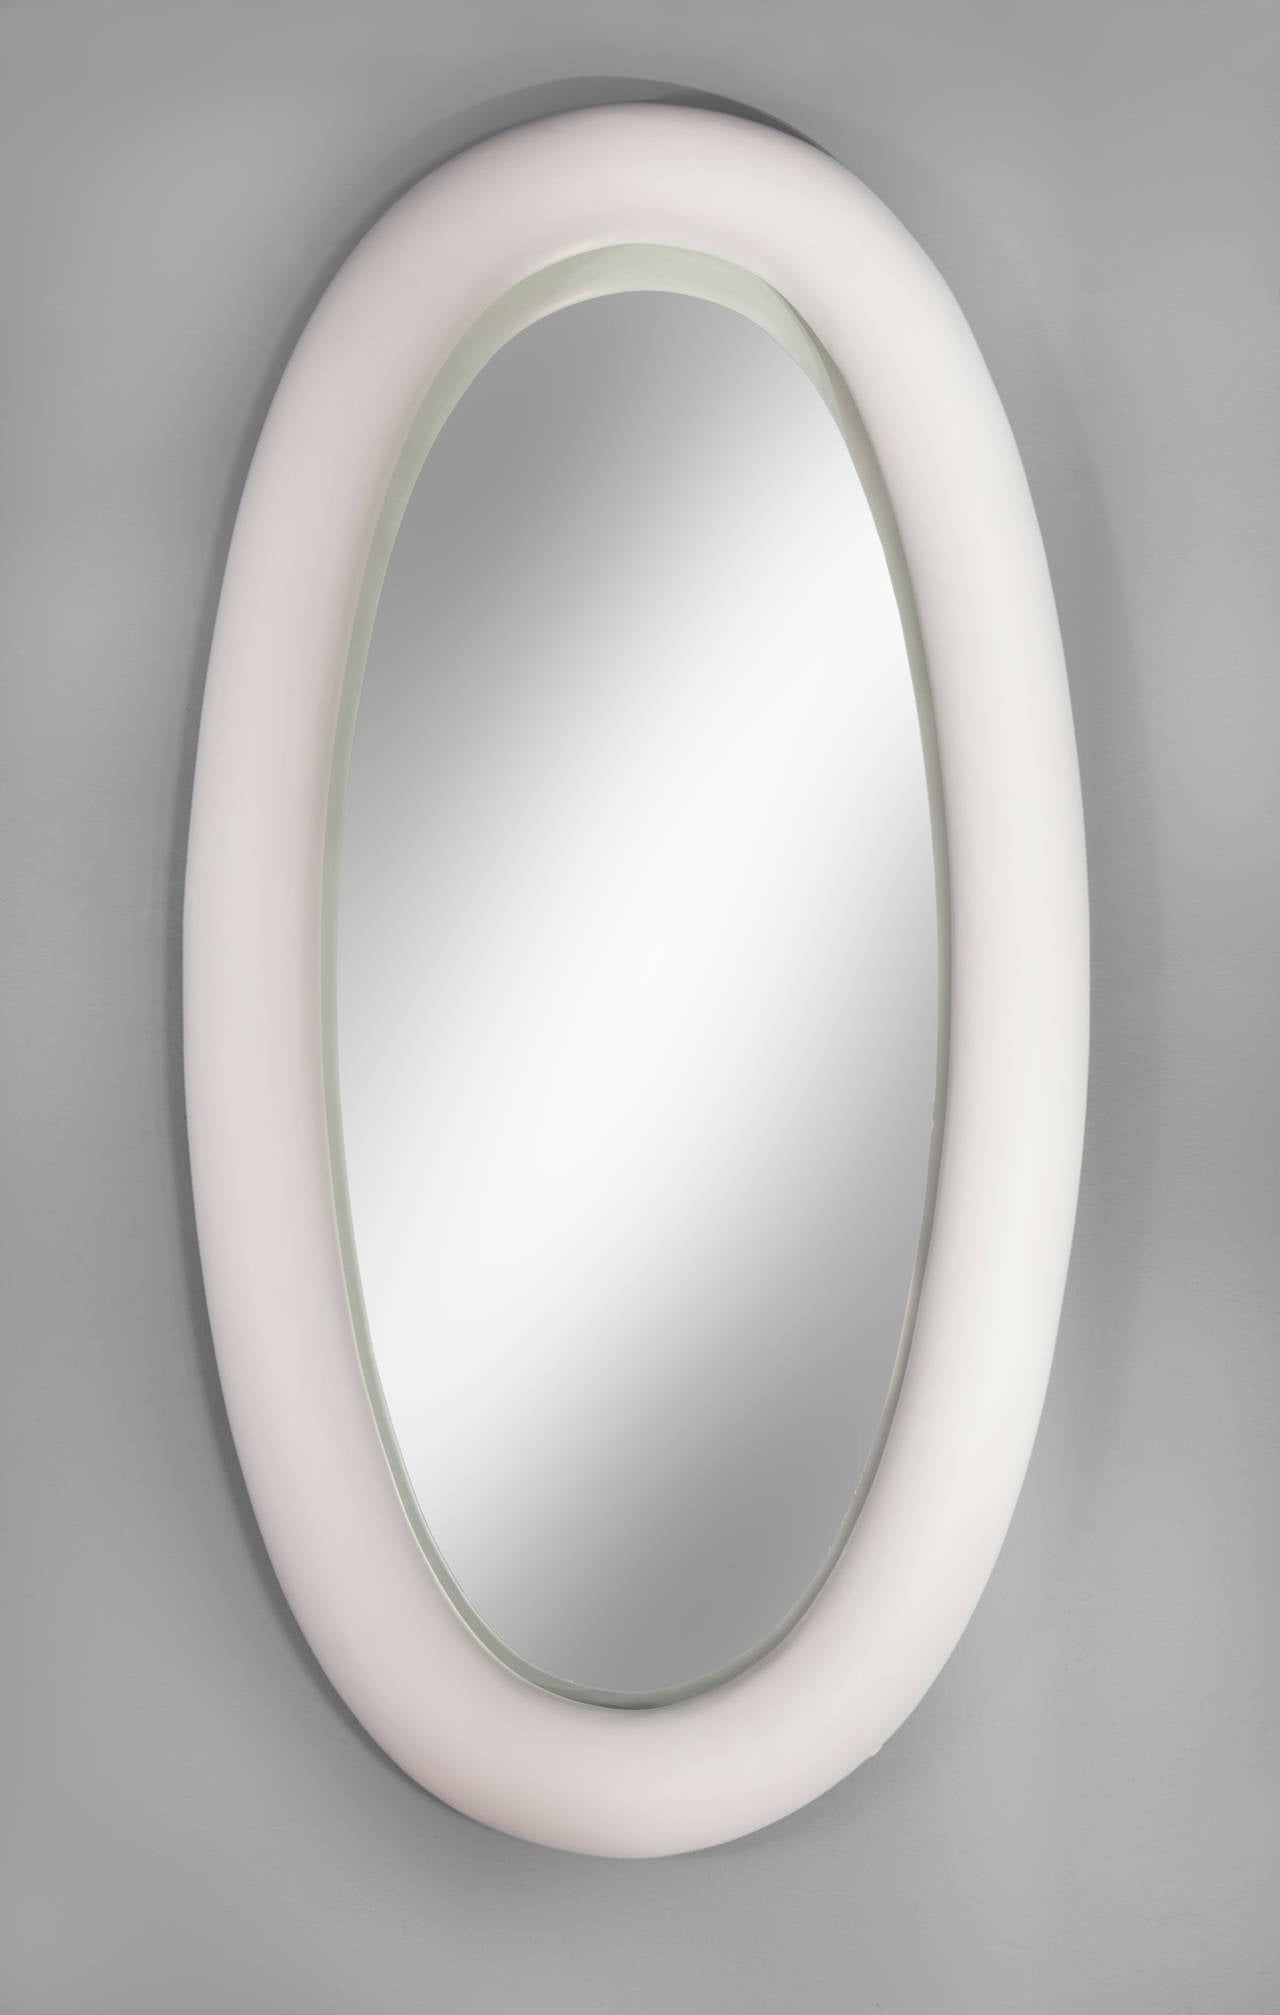 The monumentally scaled and deeply recessed frame of this fantastic piece balances perfectly with the powdery, soft white finish. The massive rounded frame has a delightfully surreal feel about it. The elliptical mirror plate in a rounded wood and